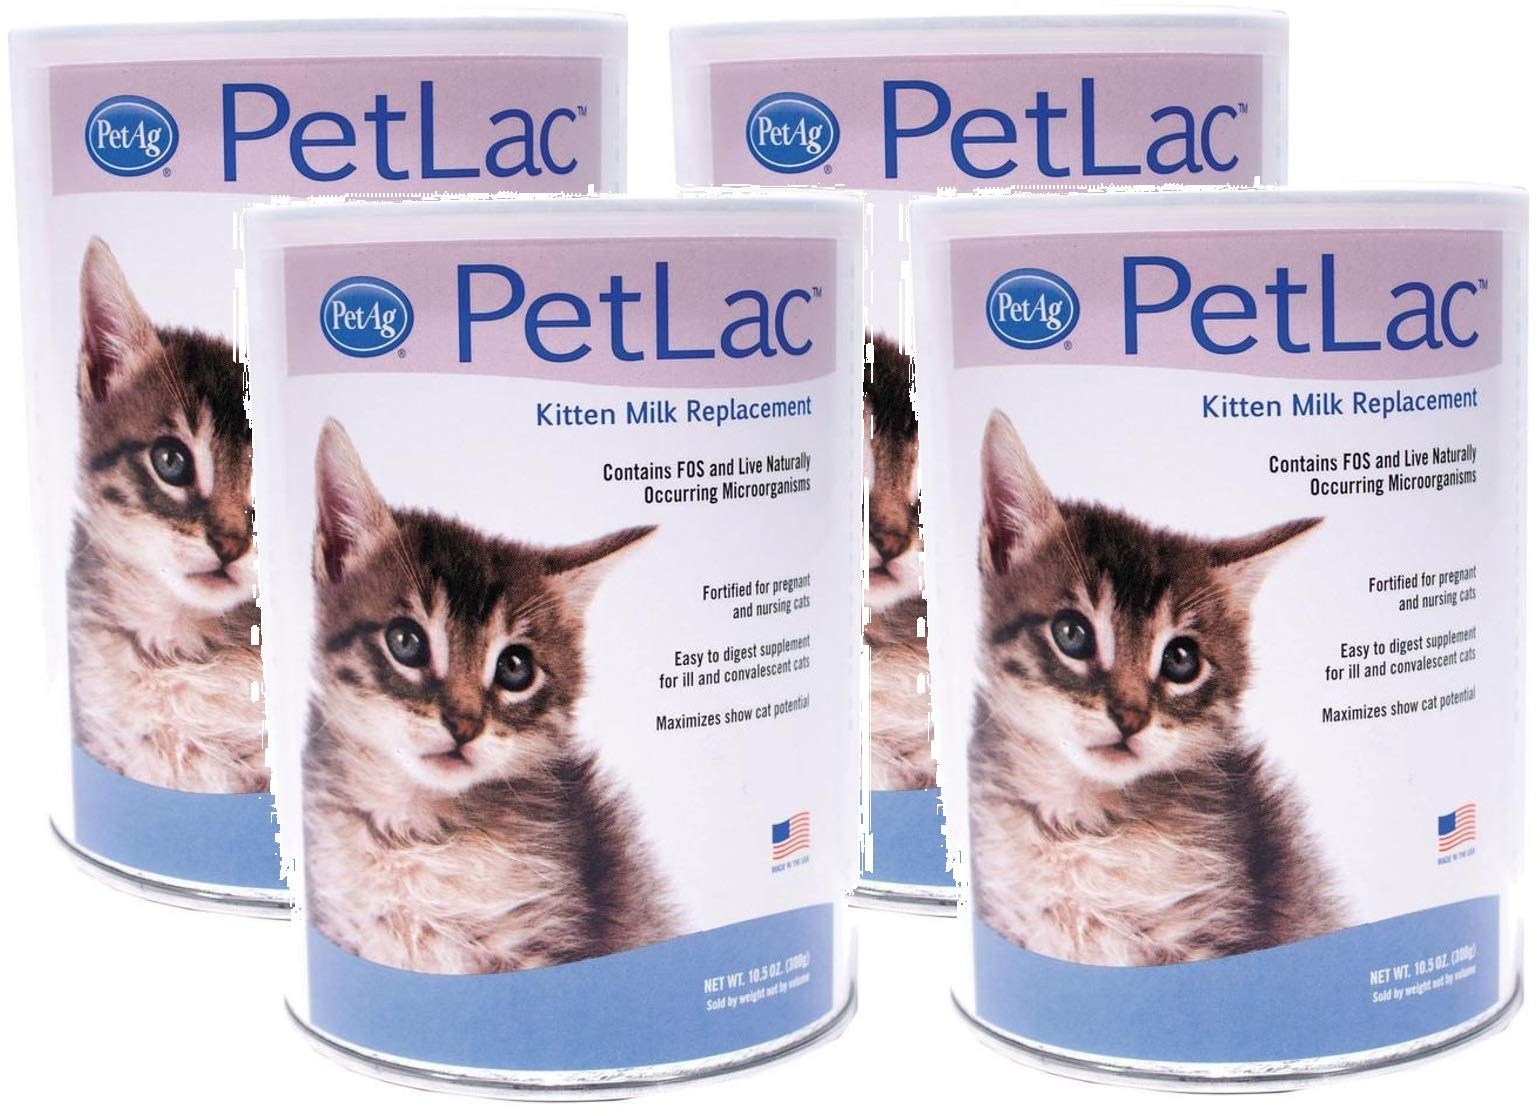 Pet Ag 4 Pack of PetLac Milk Powder for Kittens, 10.5-Ounce Each by Pet Ag